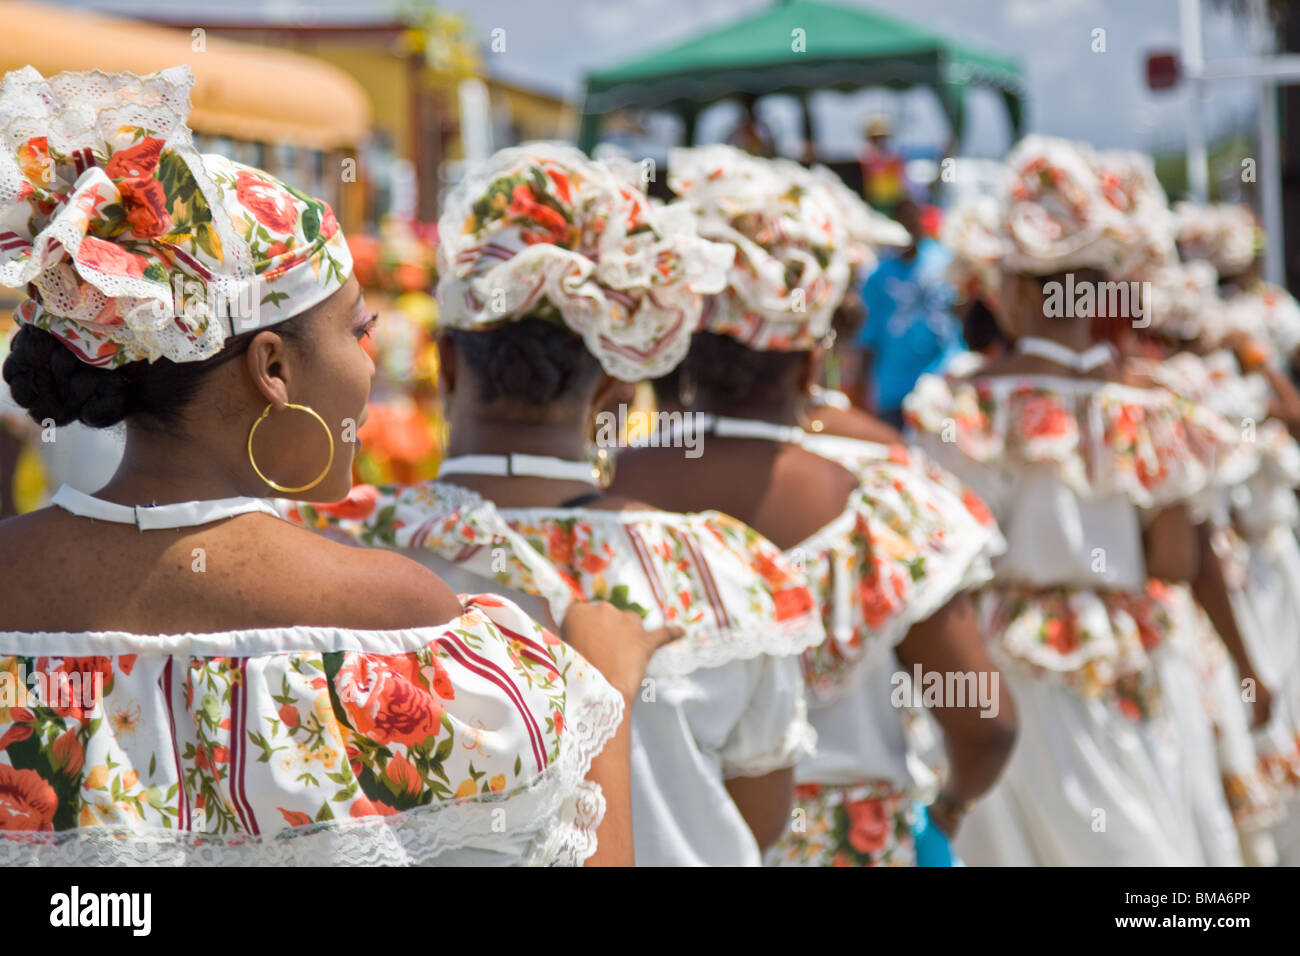 Participants dancing in Harvest Festival Parade with colorful costume, Curacao, Netherlands Antilles. Stock Photo